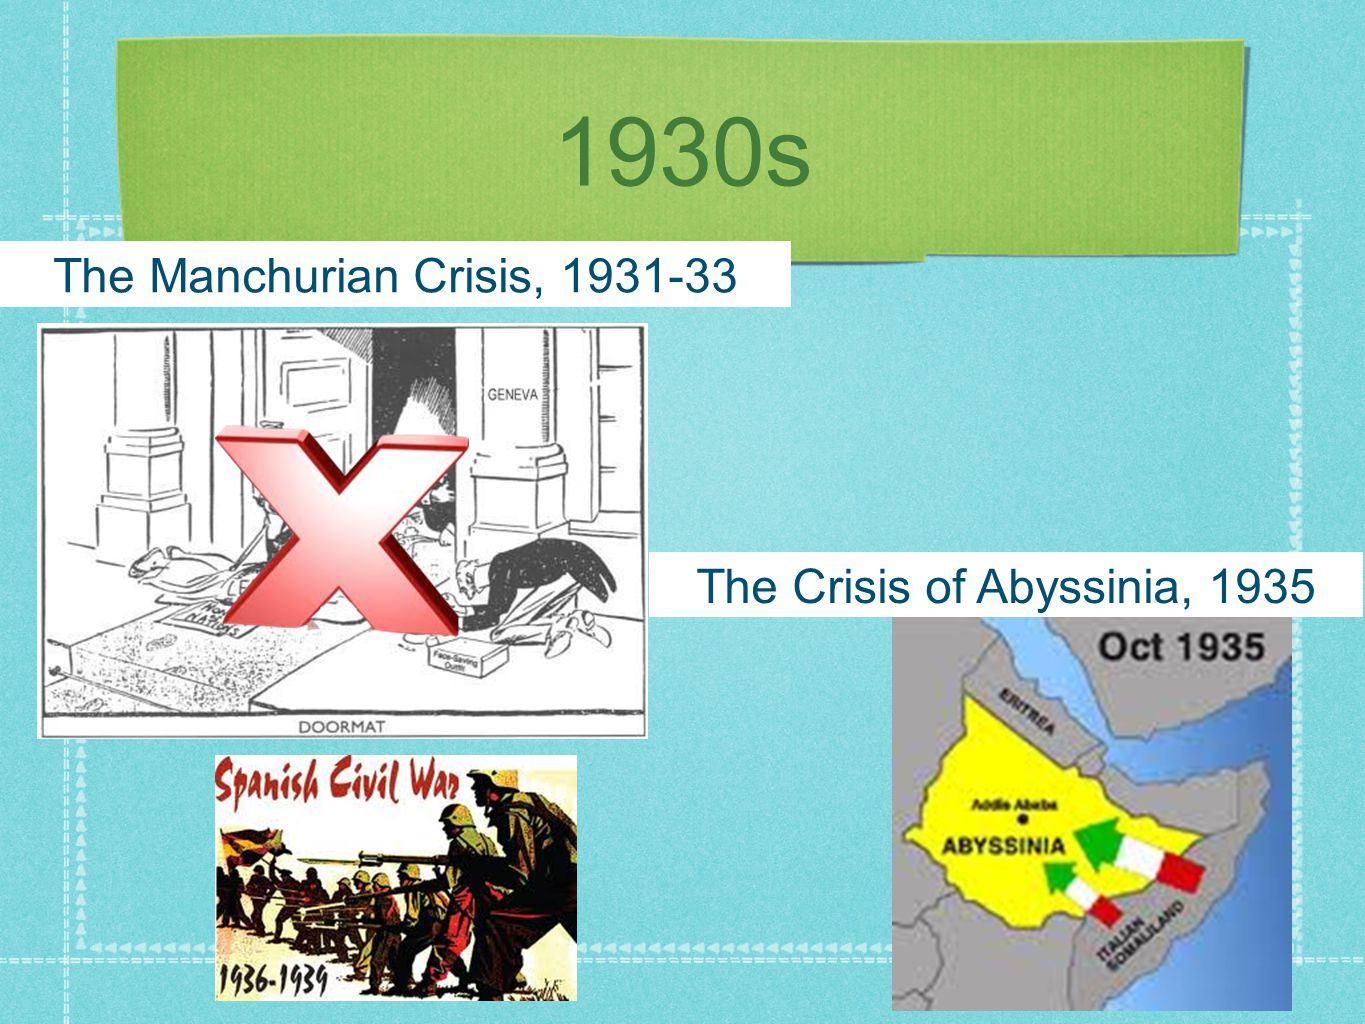 1930s The Manchurian Crisis, 1931-33 The Crisis of Abyssinia, 1935